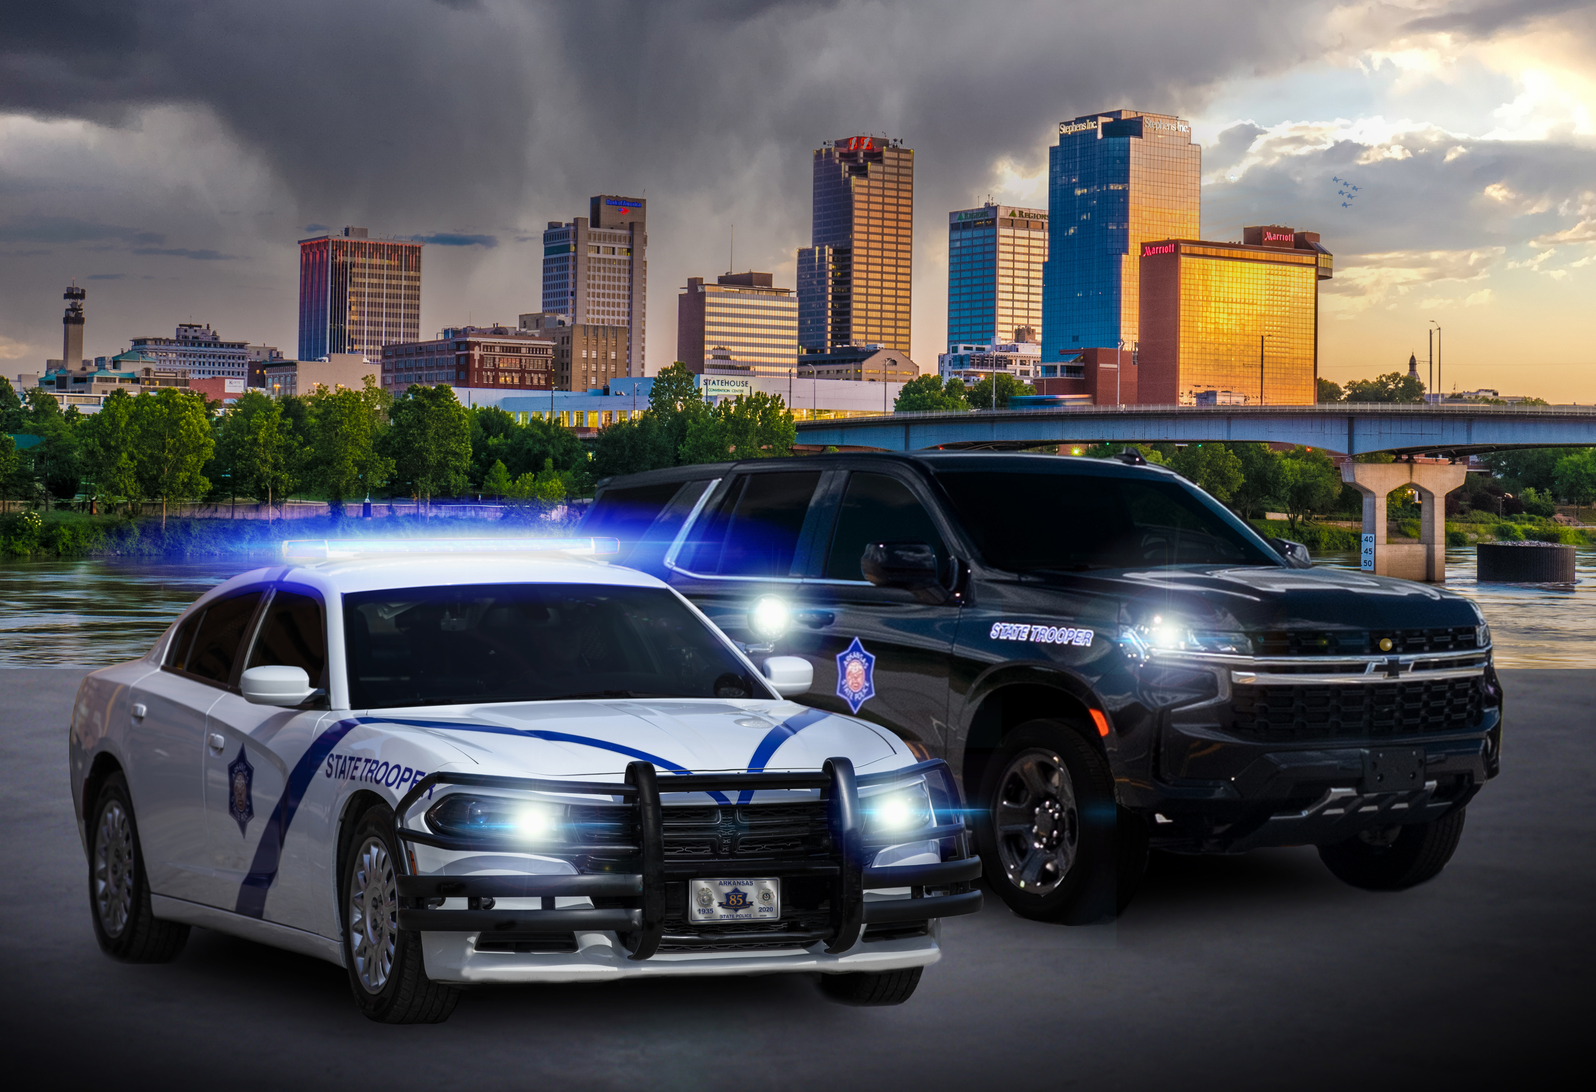 <strong>Arkansas State Police</strong><br><br>